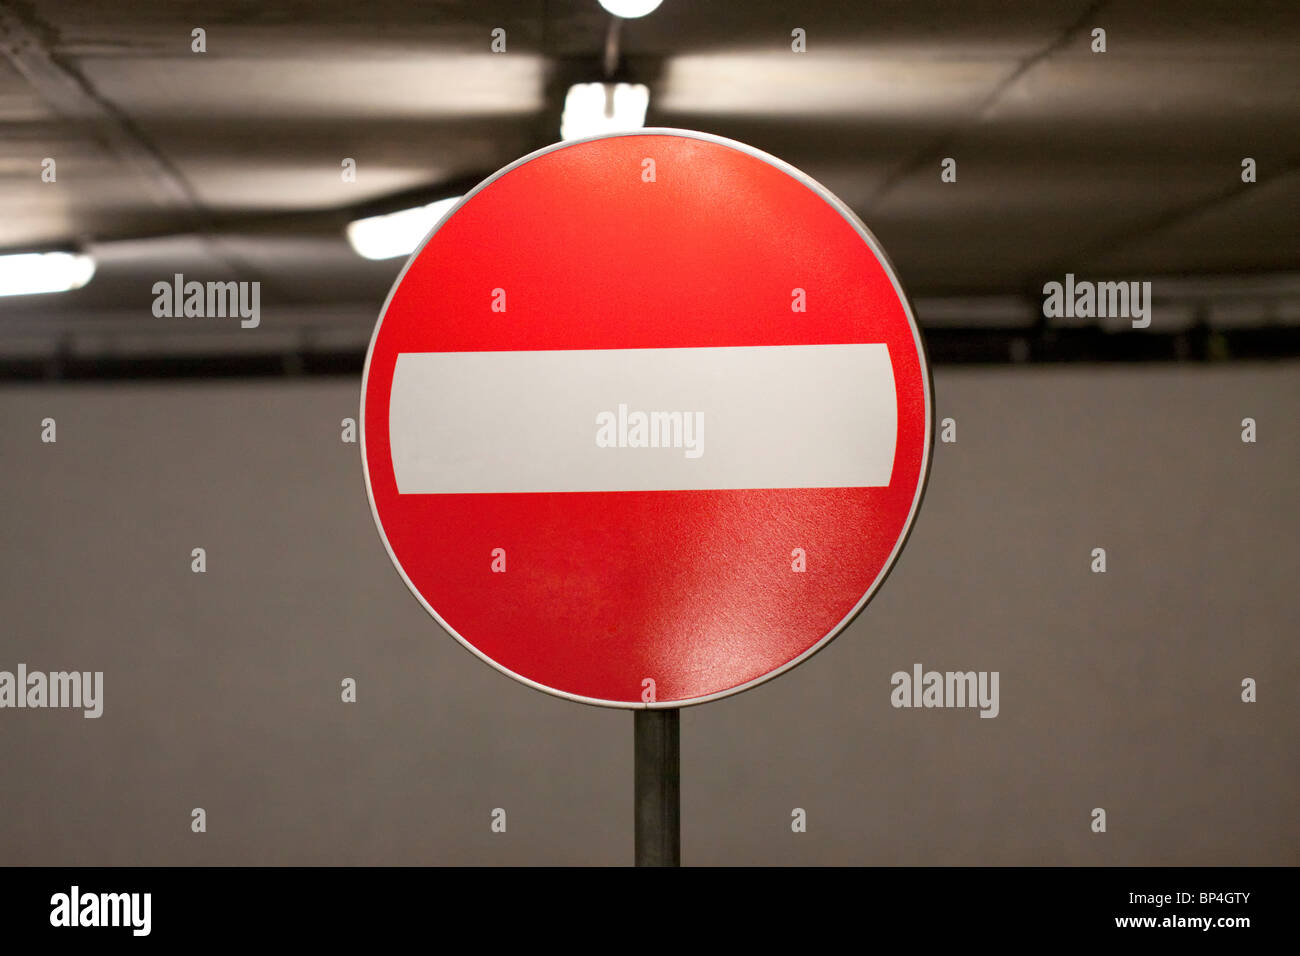 No Entry sign in an indoor parking garage - Stock Image